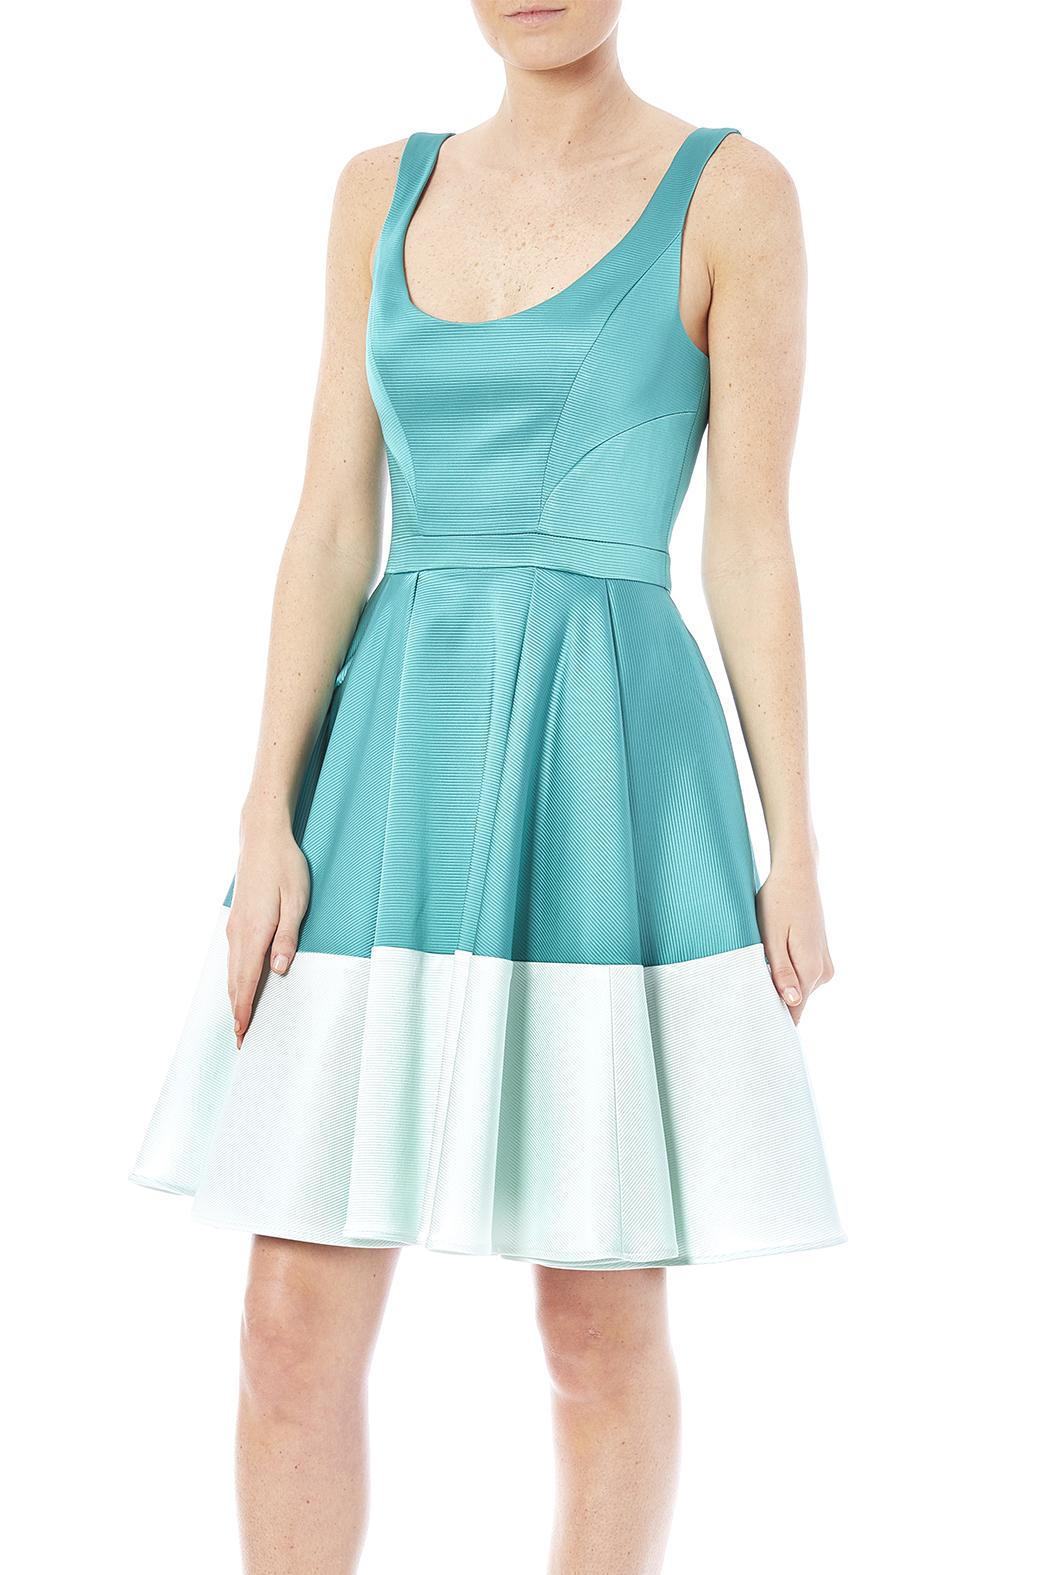 Zac By Zac Posen Charlotte Dress From Florida By The Met